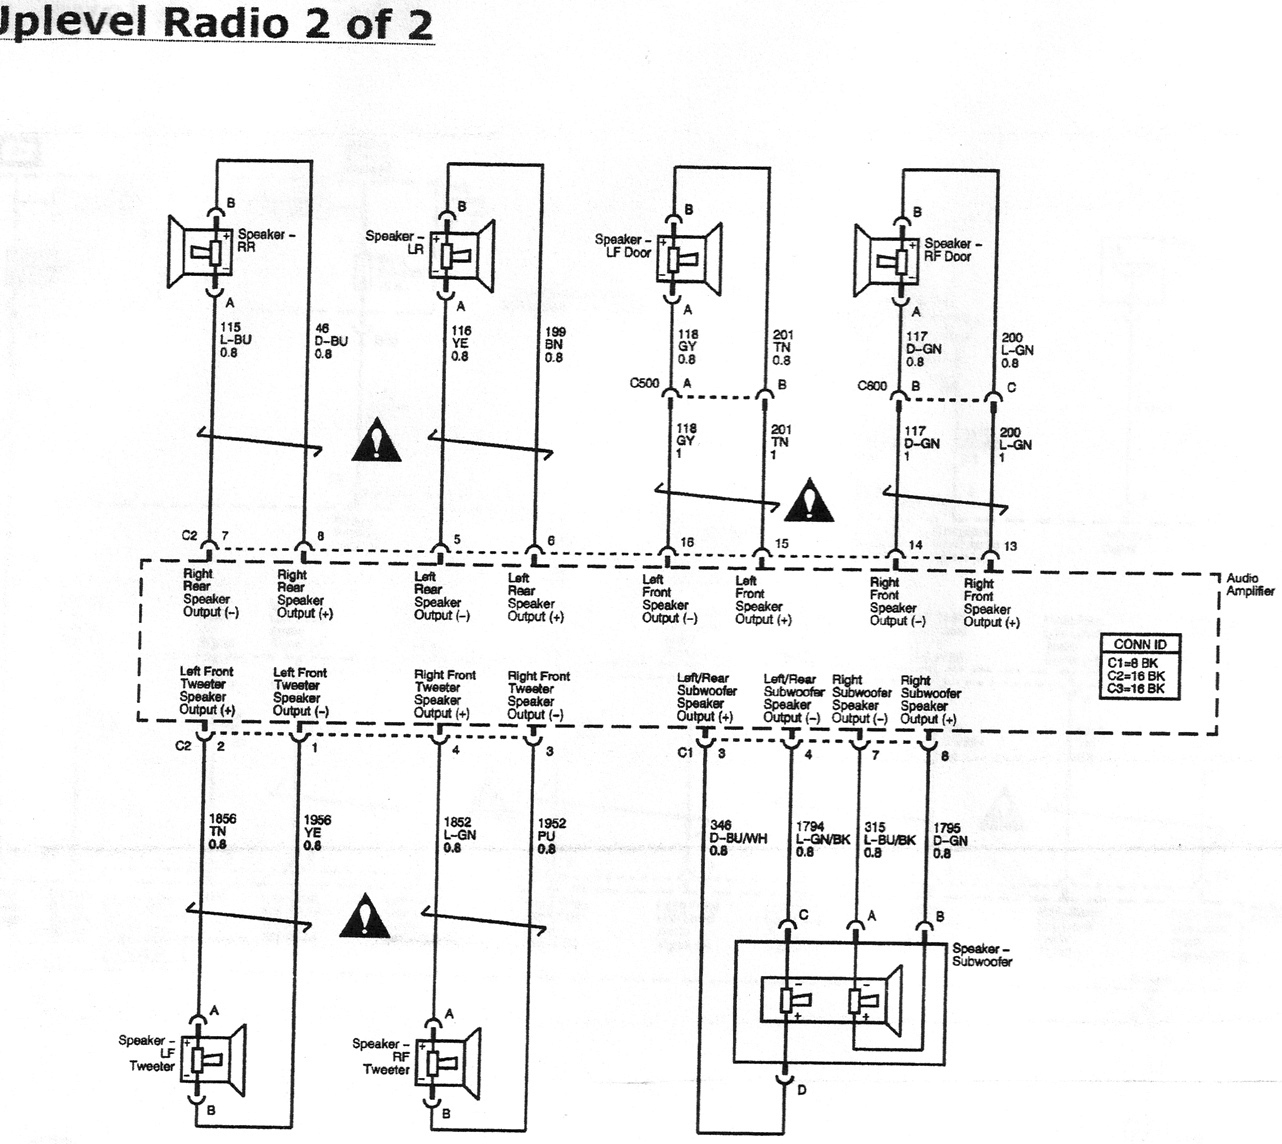 29802 monsoon amp speaker replacement monsoon_wiring_diagram_page_2 gm monsoon wiring diagram gm wiring diagrams instruction Monsoon Amplifier Specs at soozxer.org